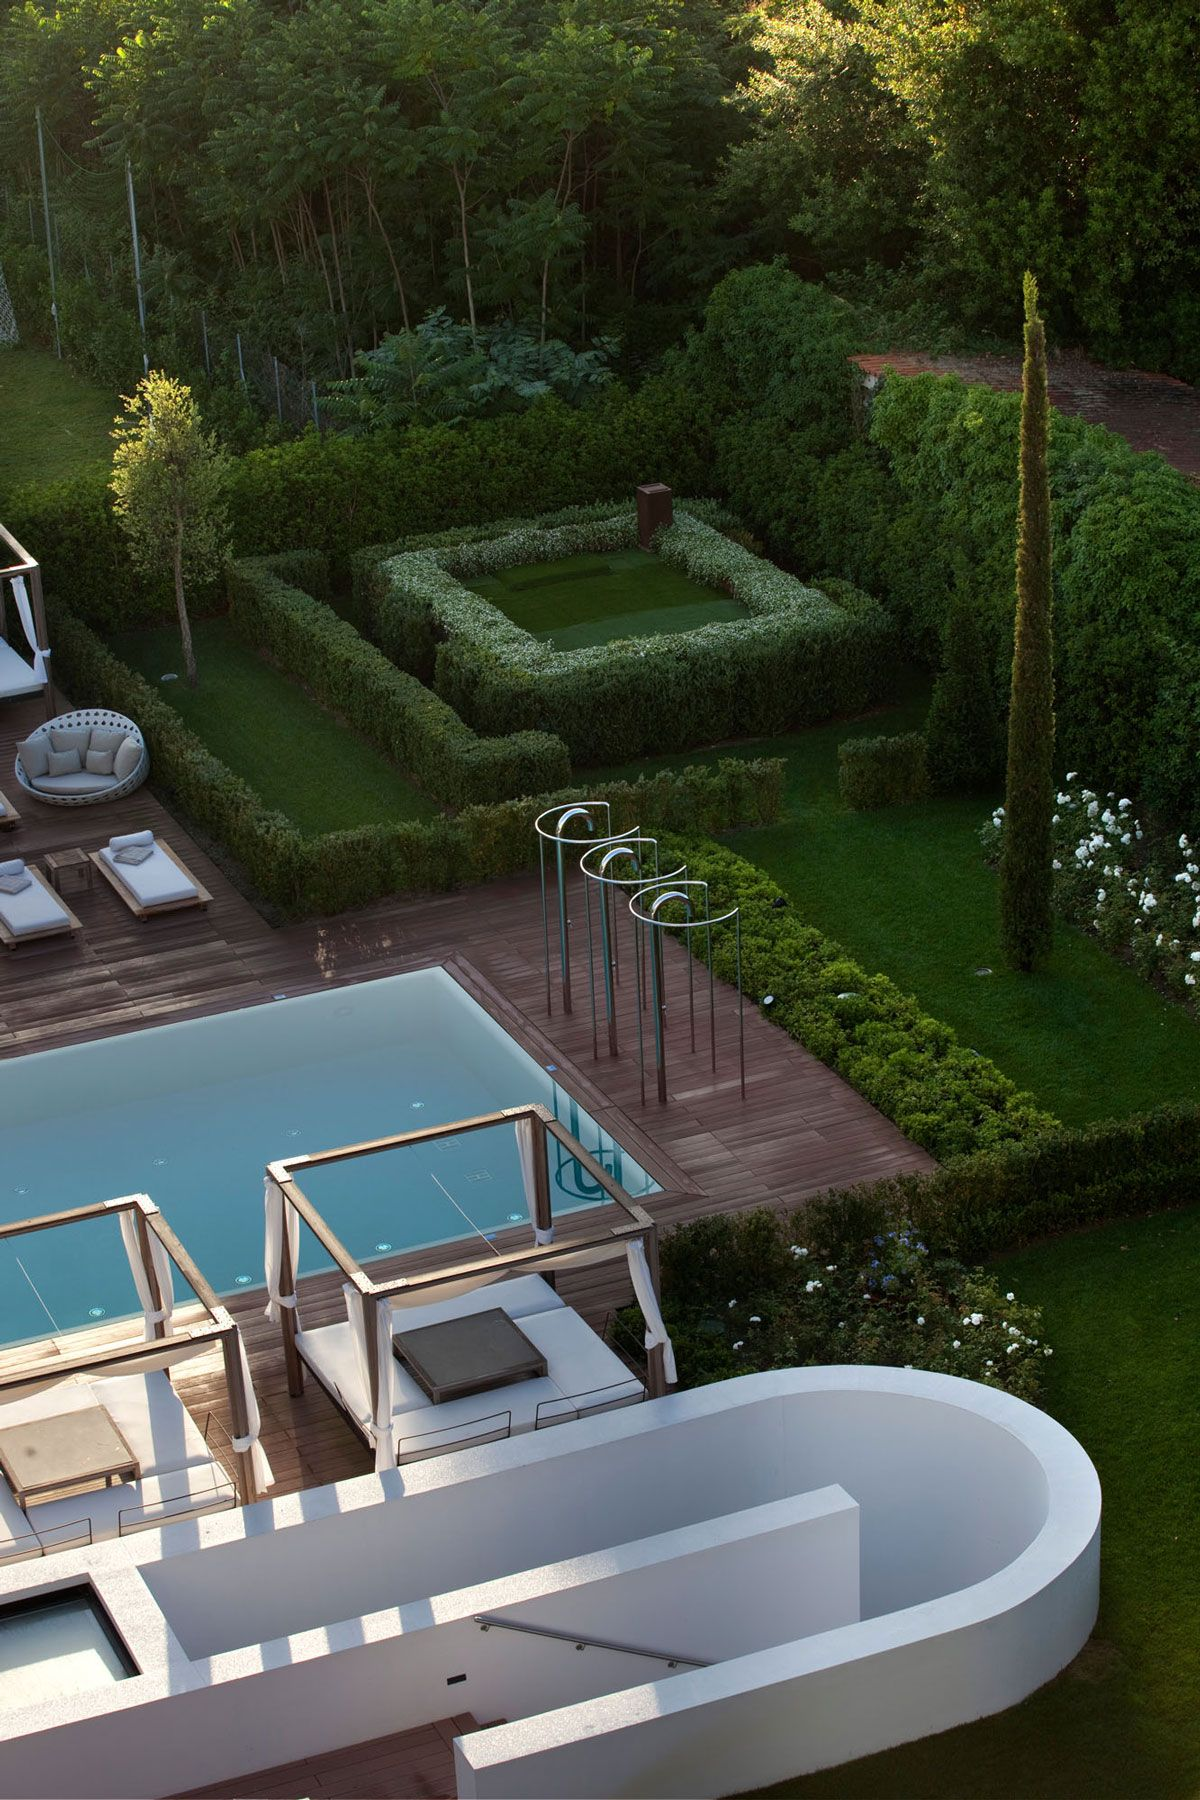 Hotels & Resort, Exquisite Five Star Hotel Principe Forte Dei Marmi In  Italy Featuring Exterior Design With Outdoor Pool Landscaping Plus Garden,  ... - 5 Star Hotel Principe Forte Dei Marmi (11) Paisaje + Pinterest